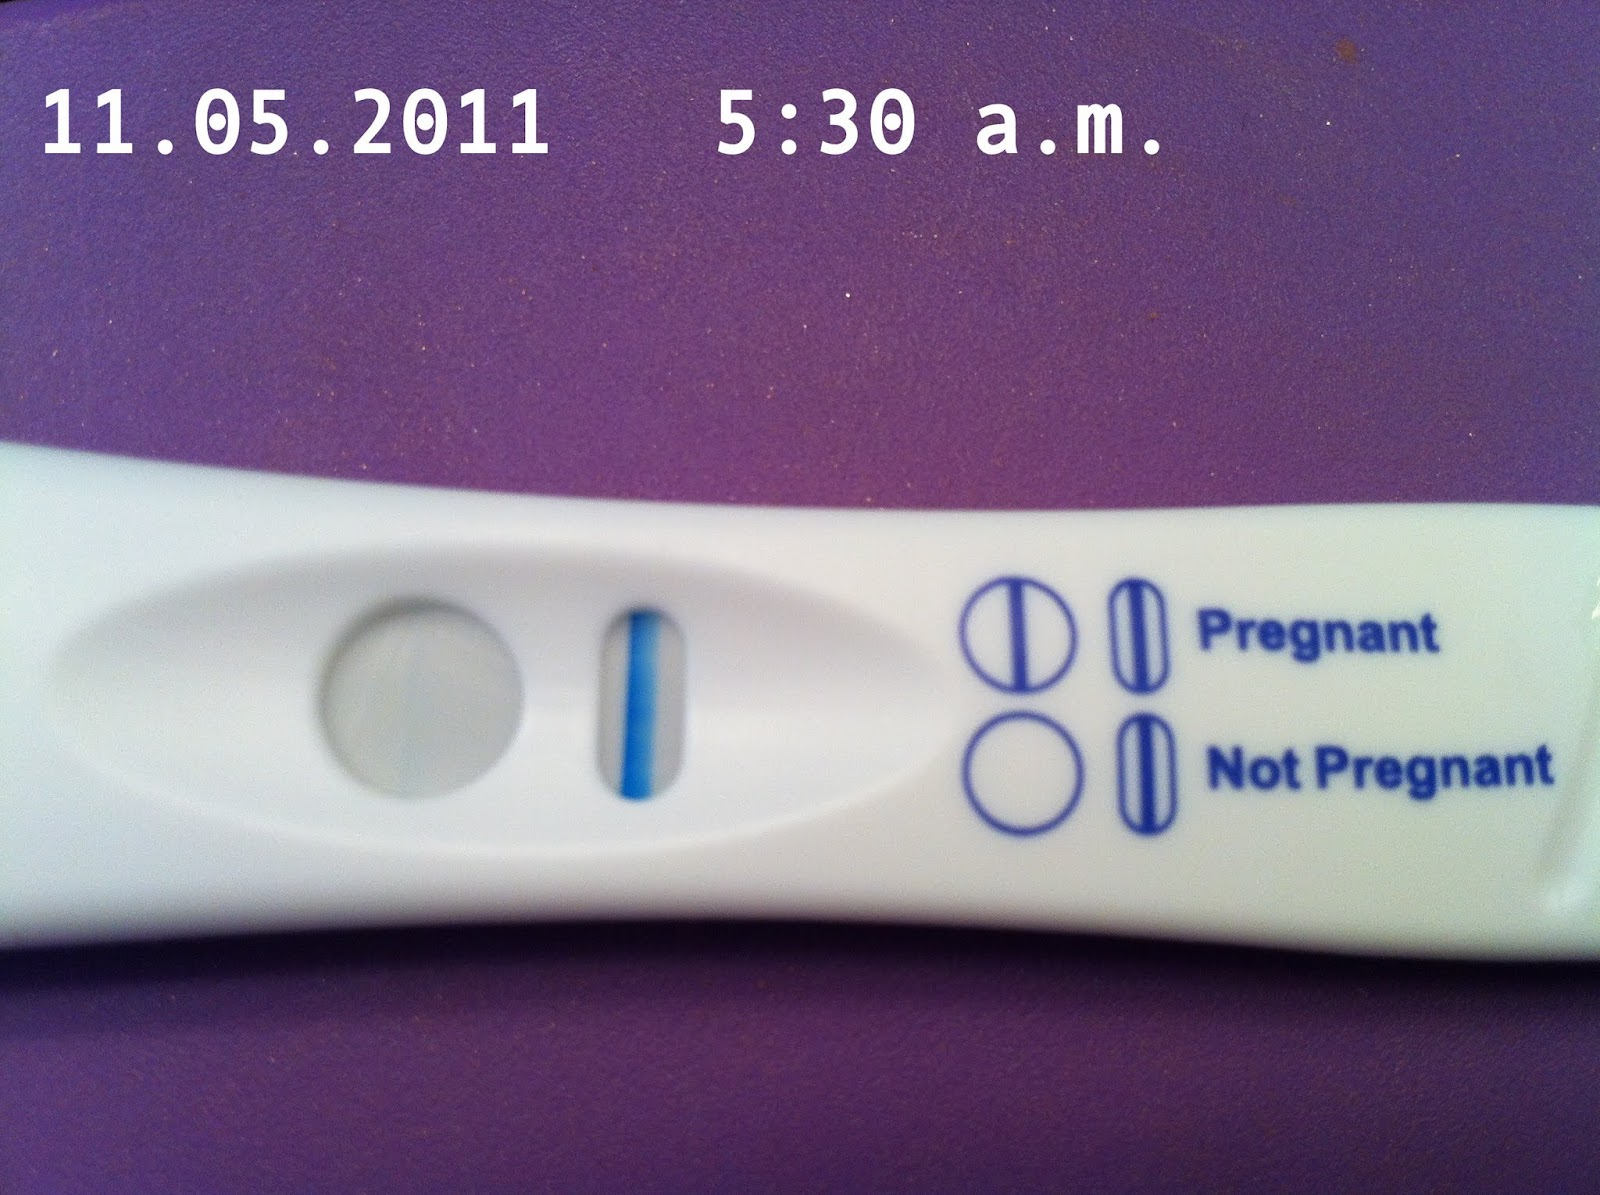 Pregnancy Test Extremely Faint Line - Pregnancy Symptoms